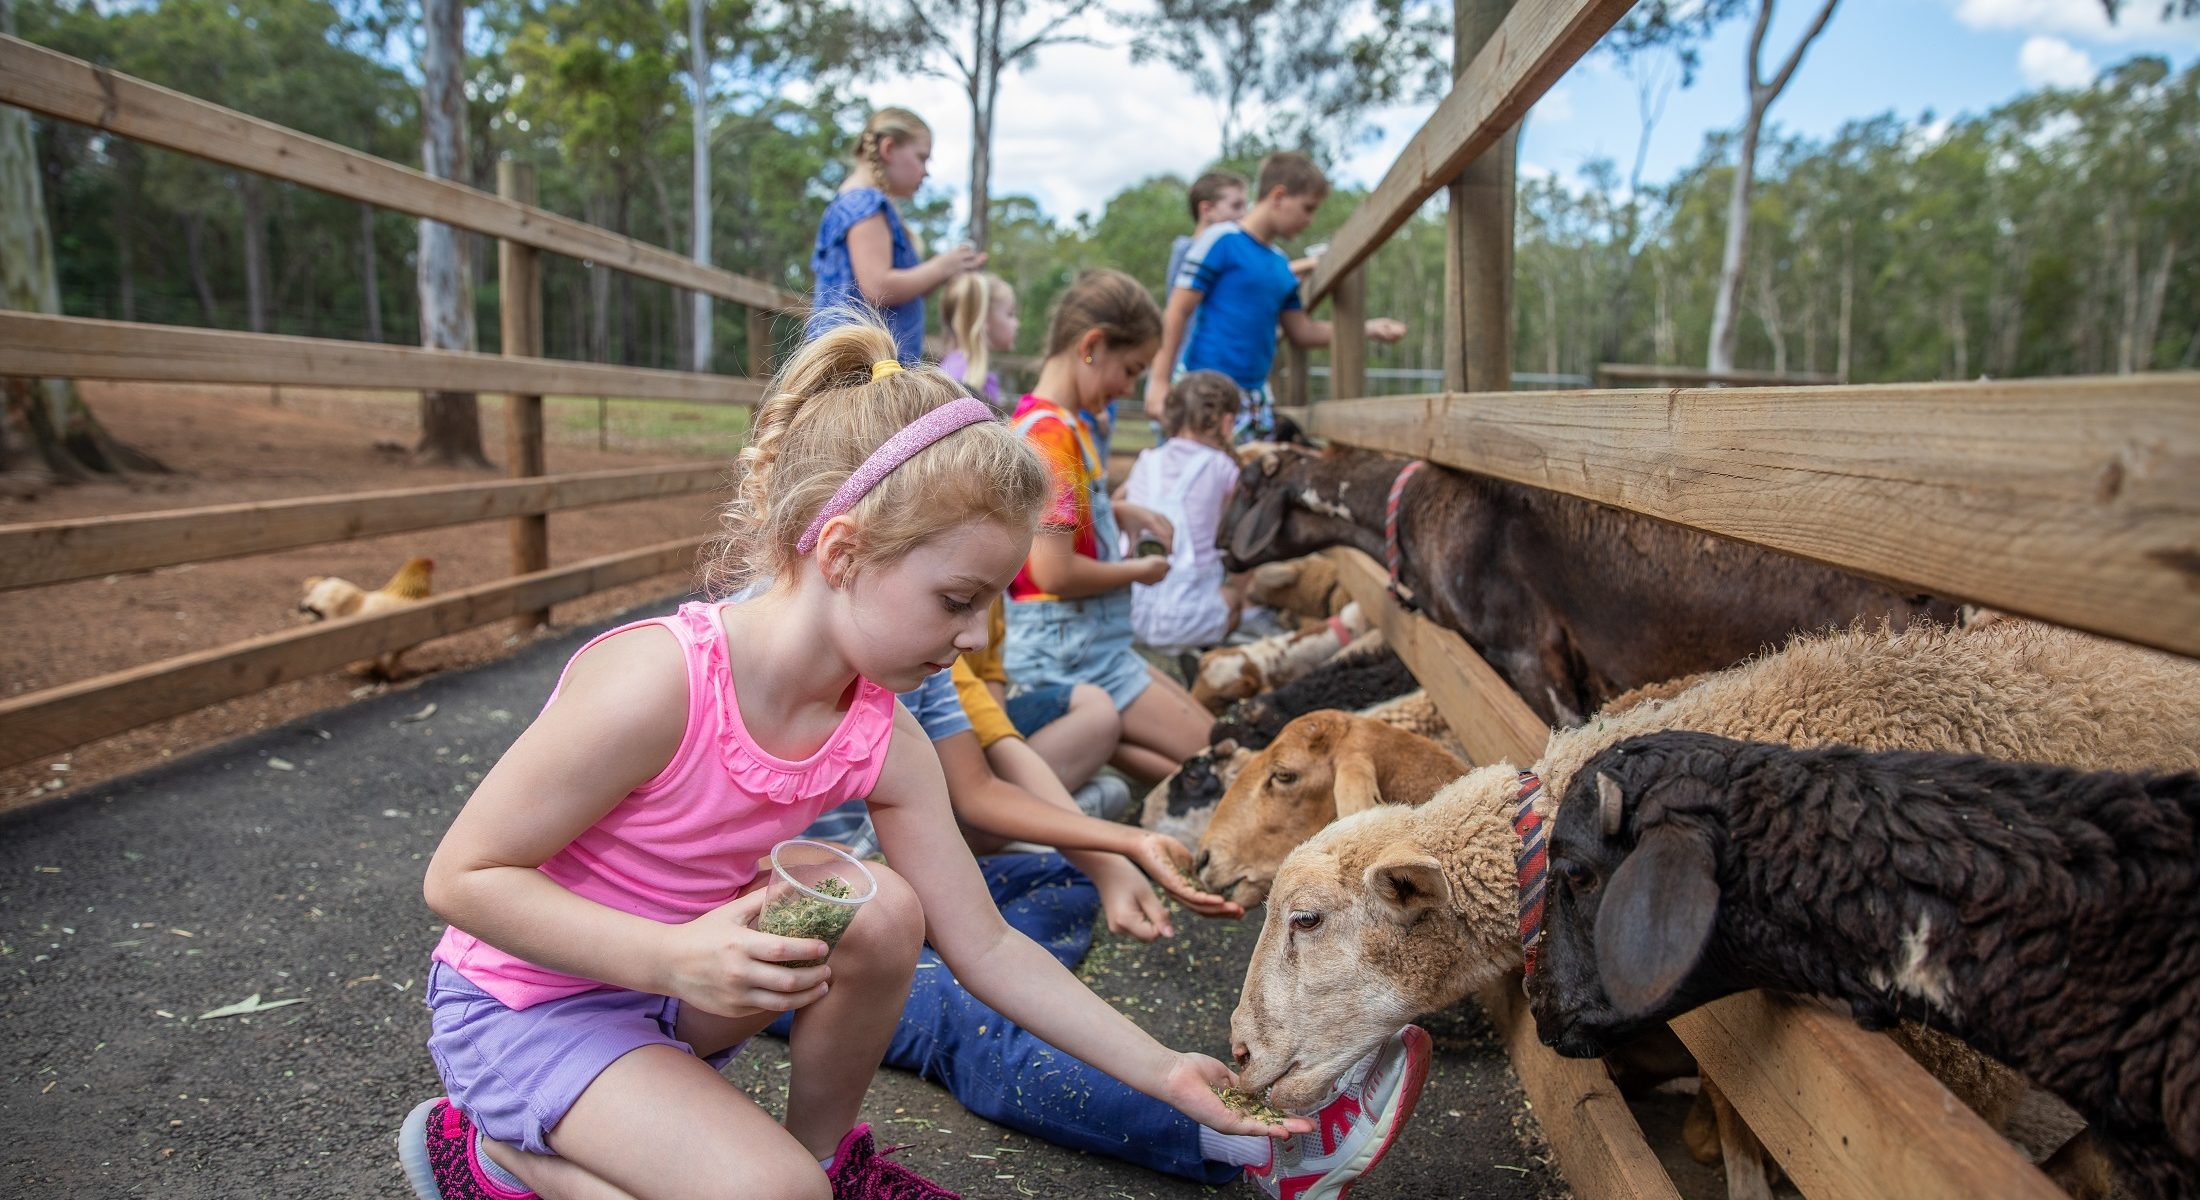 White Ridge Farm Girl Feeding Animals Moreton Bay Region